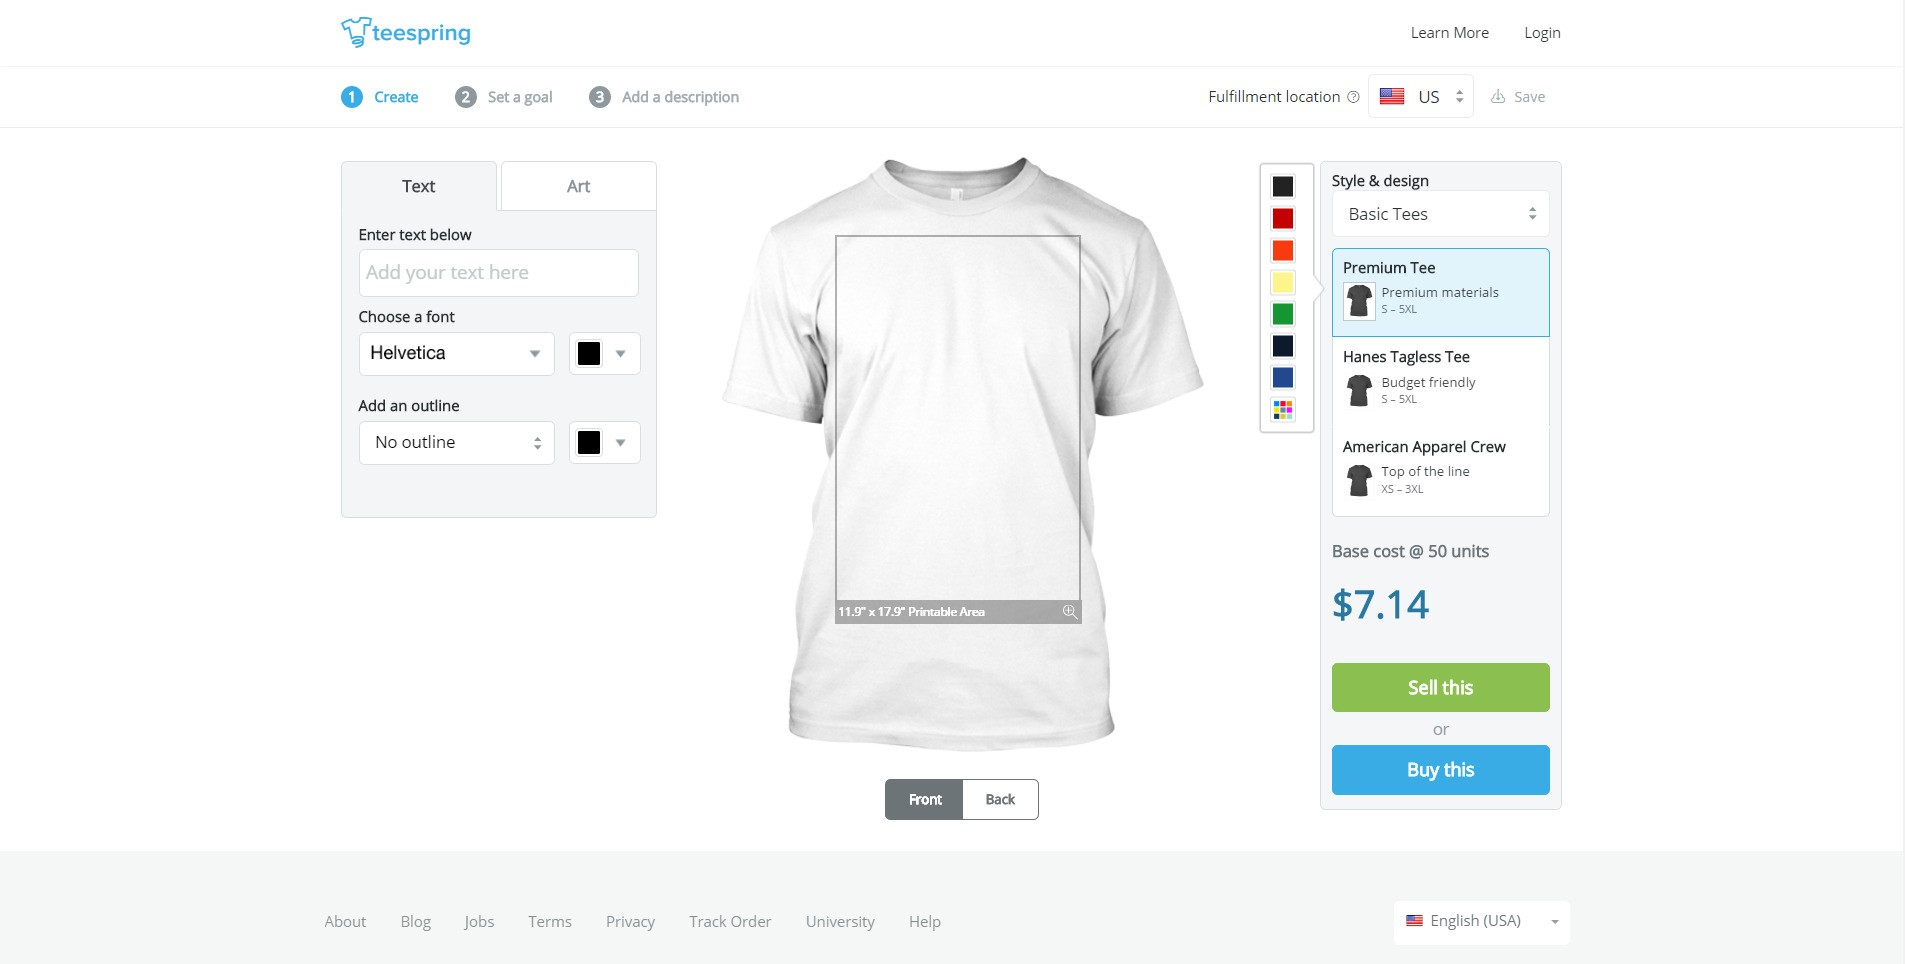 Design your own t-shirt label - Create Your Own Designs